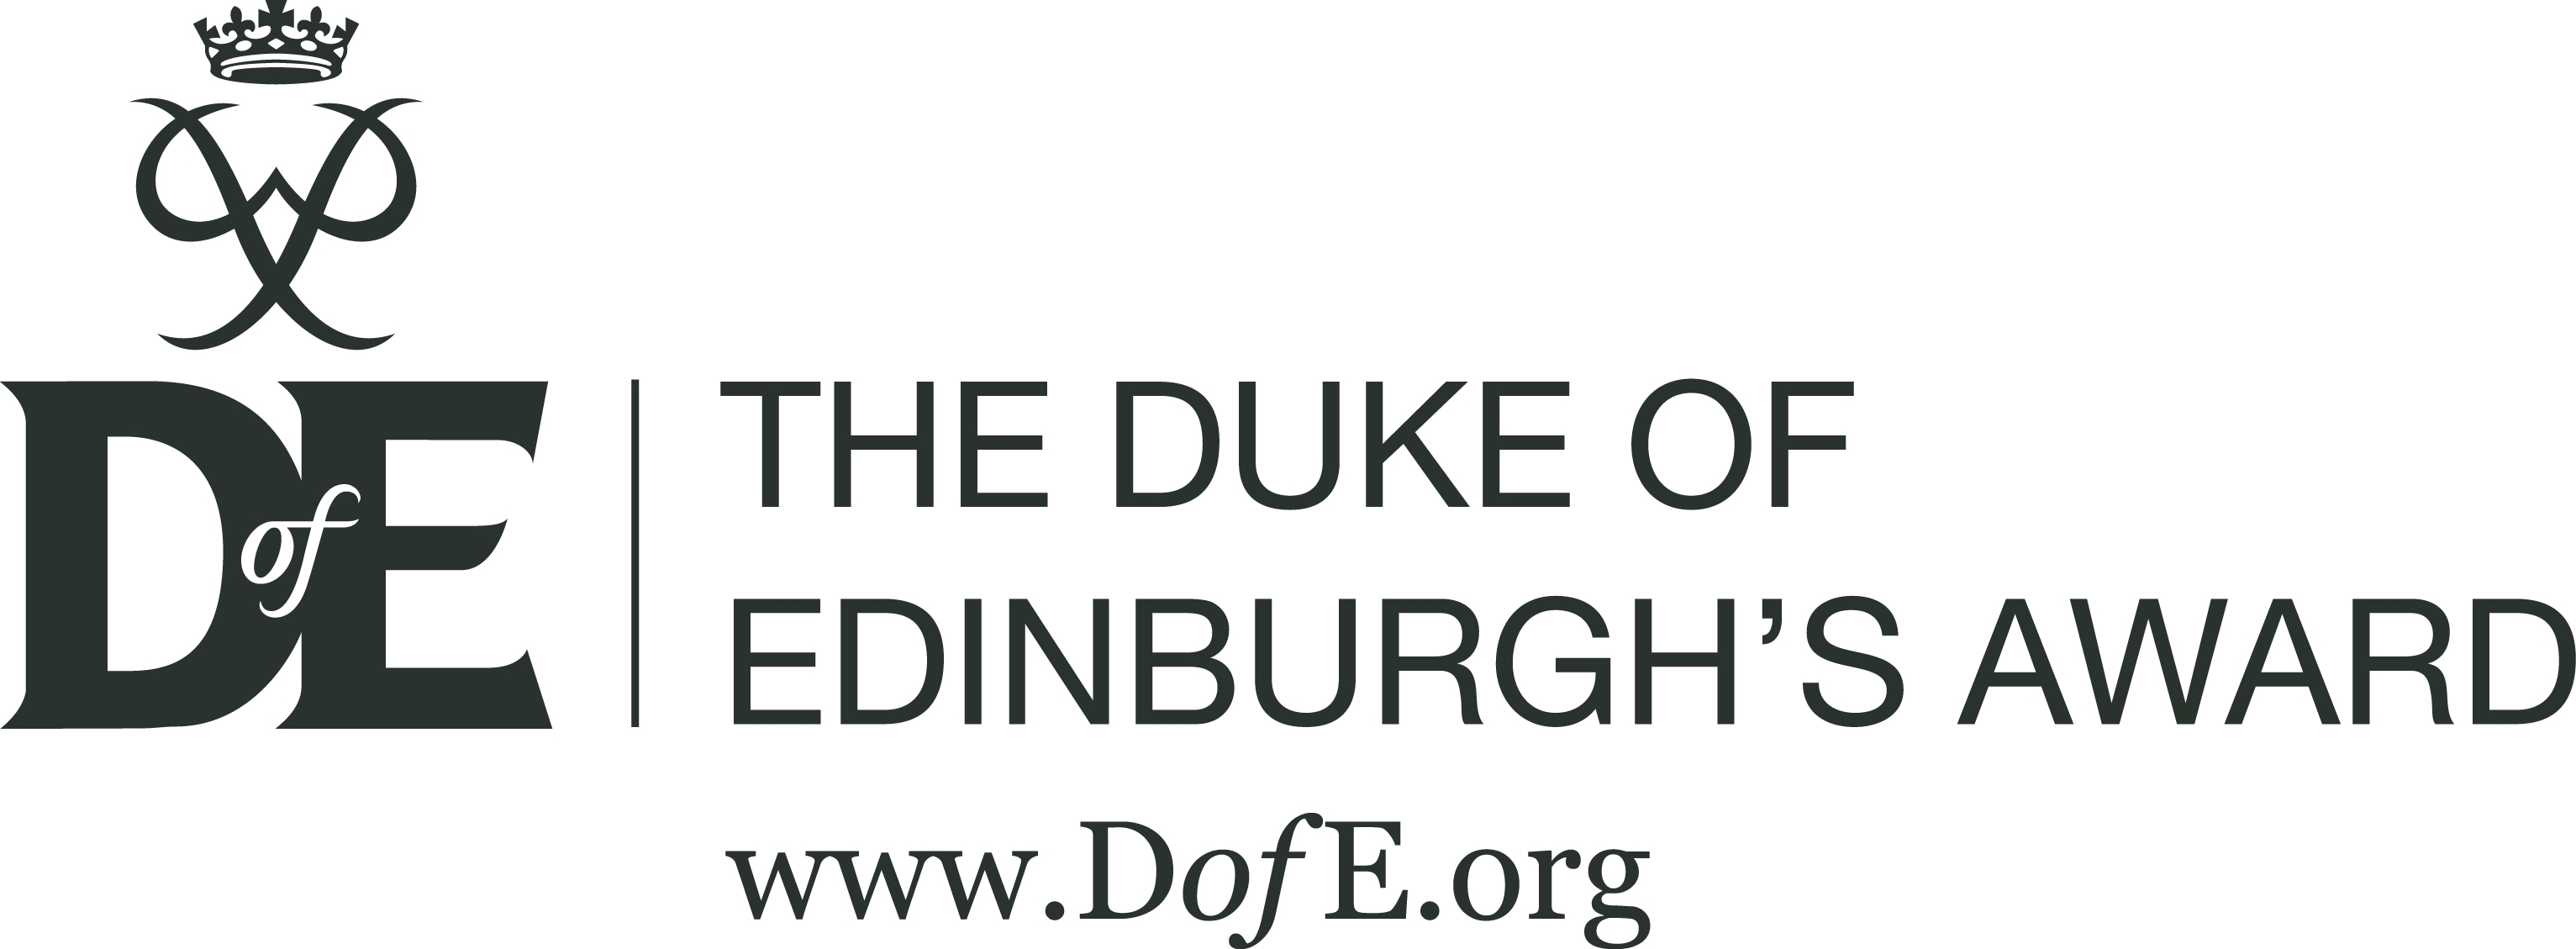 The Duke of Edinburgh's Award (DofE) - logo